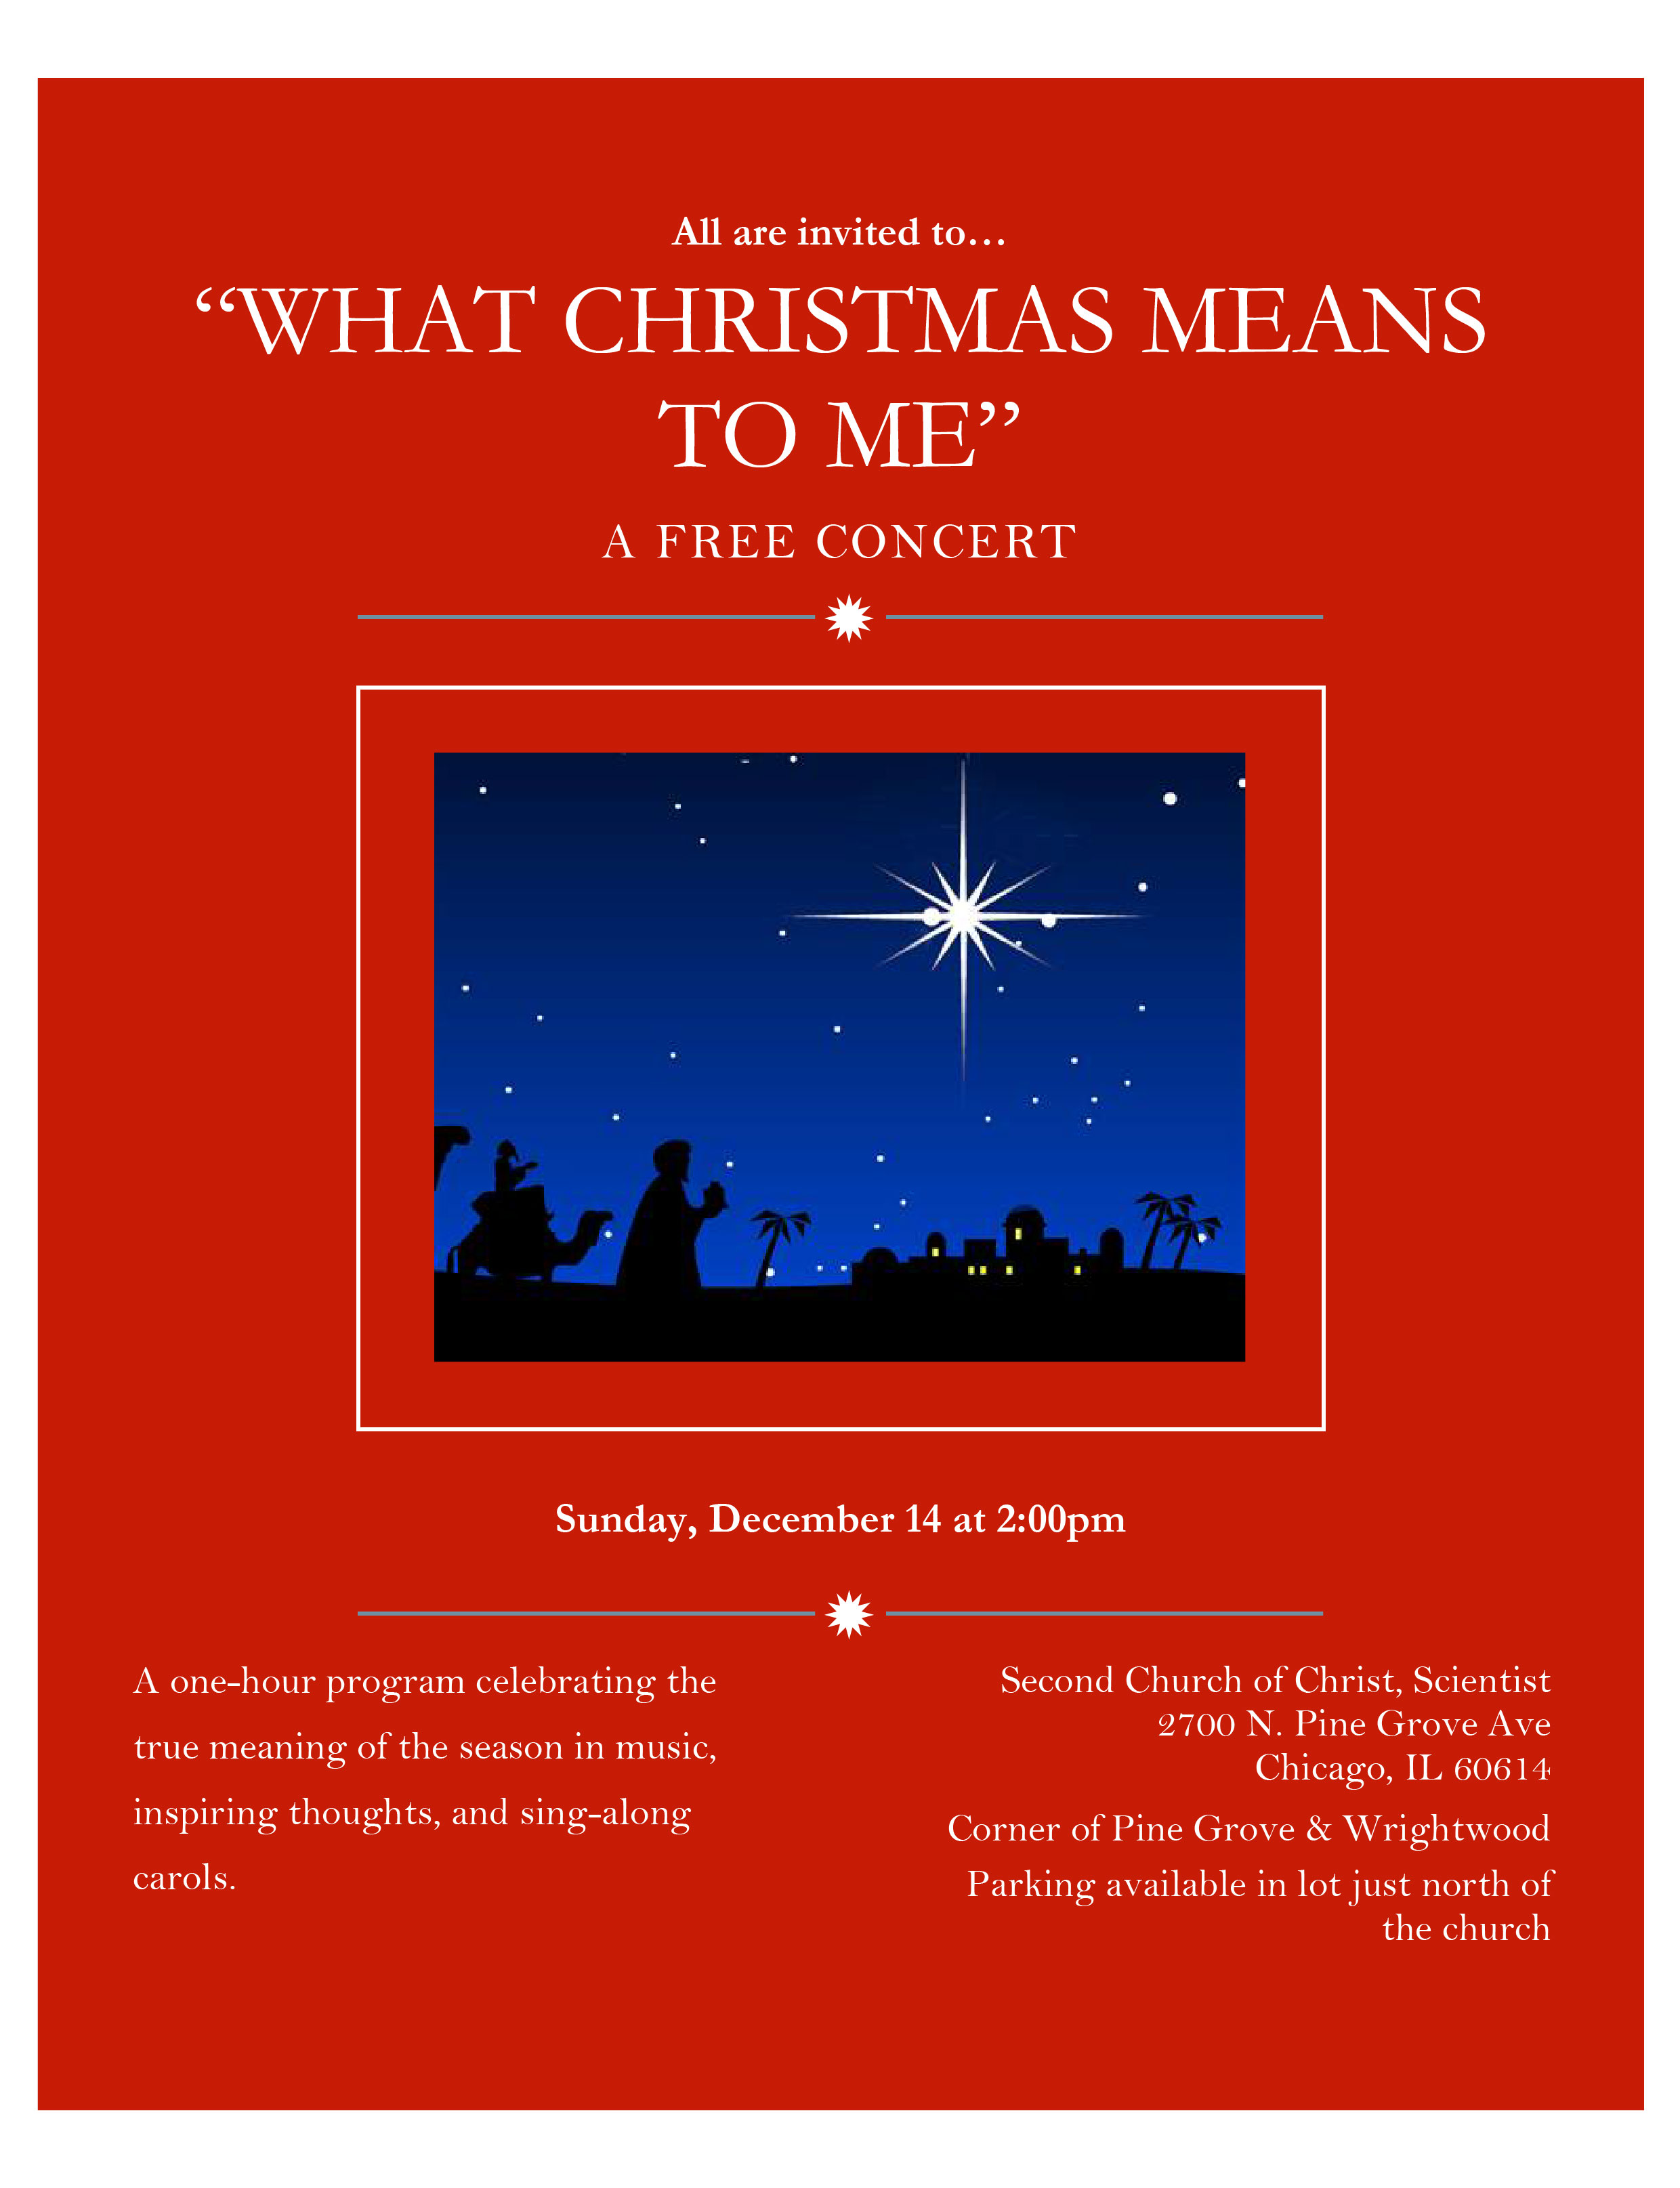 Christmas Concerts Near Me.What Christmas Means To Me Concert Seventeenth Church Of